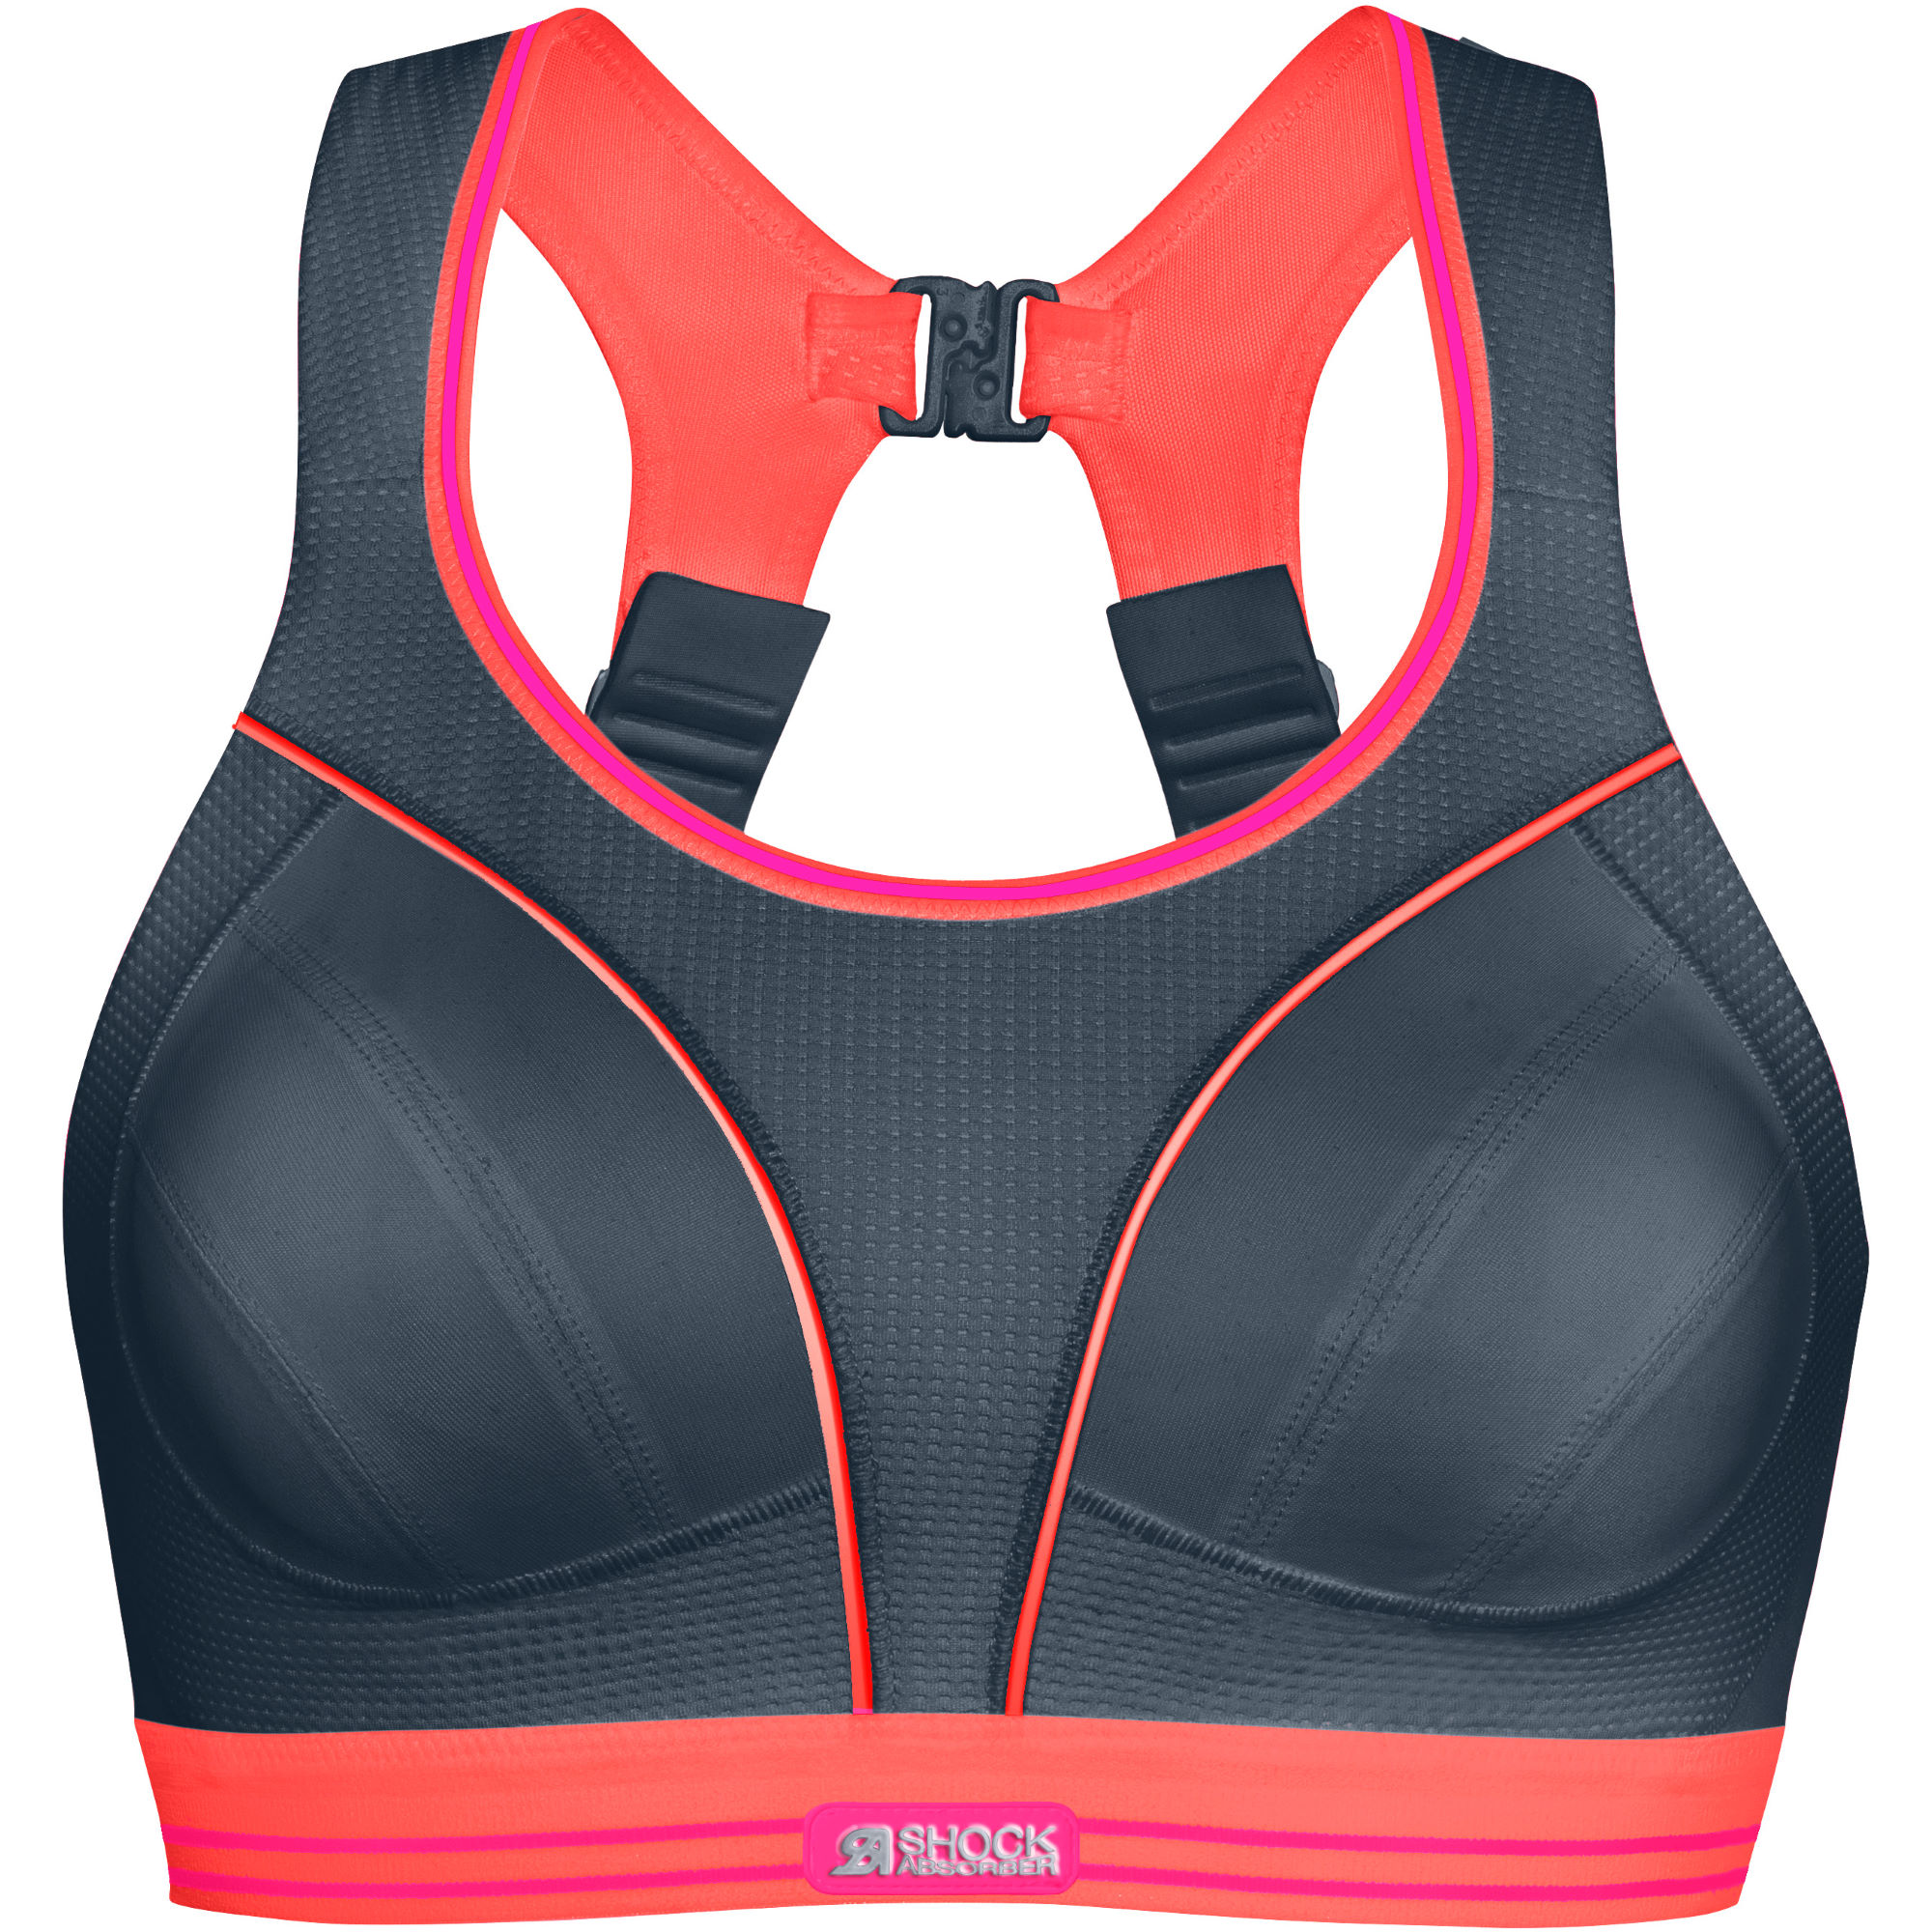 Wiggle | Shock Absorber Ultimate Run Bra (Grey/Coral) | Sports Bras & Underwear